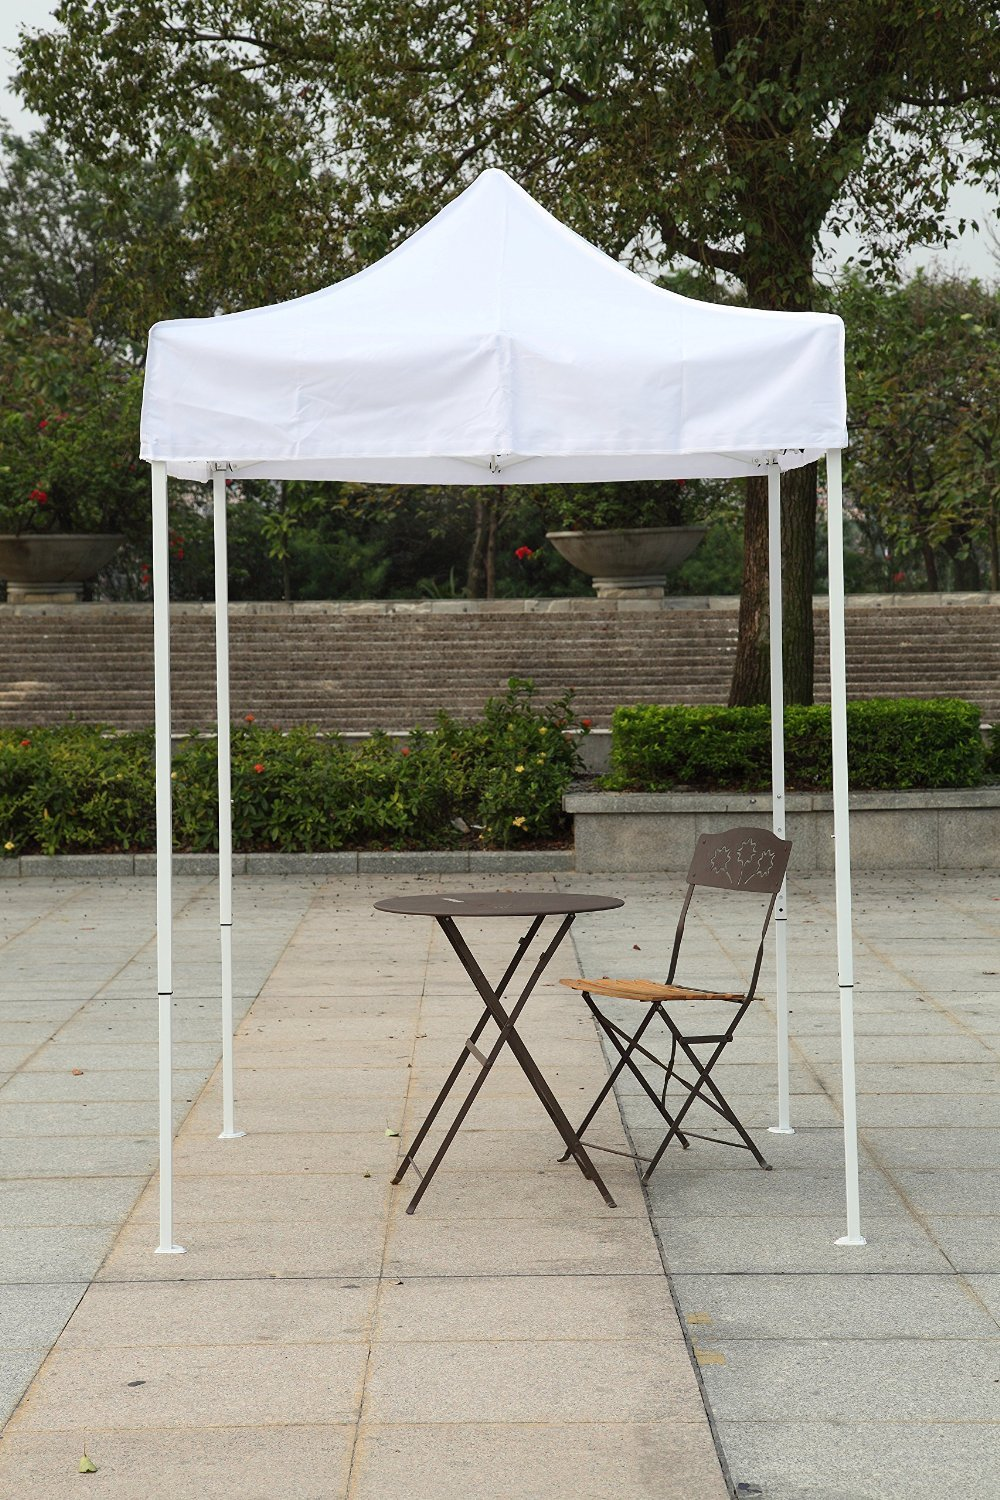 [White Frame] 5x5 Feet Canopy Tent Gazebo Party Canopy Commercial Fair Shelter Car Canopy Wedding Party Easy Pop Up (White)